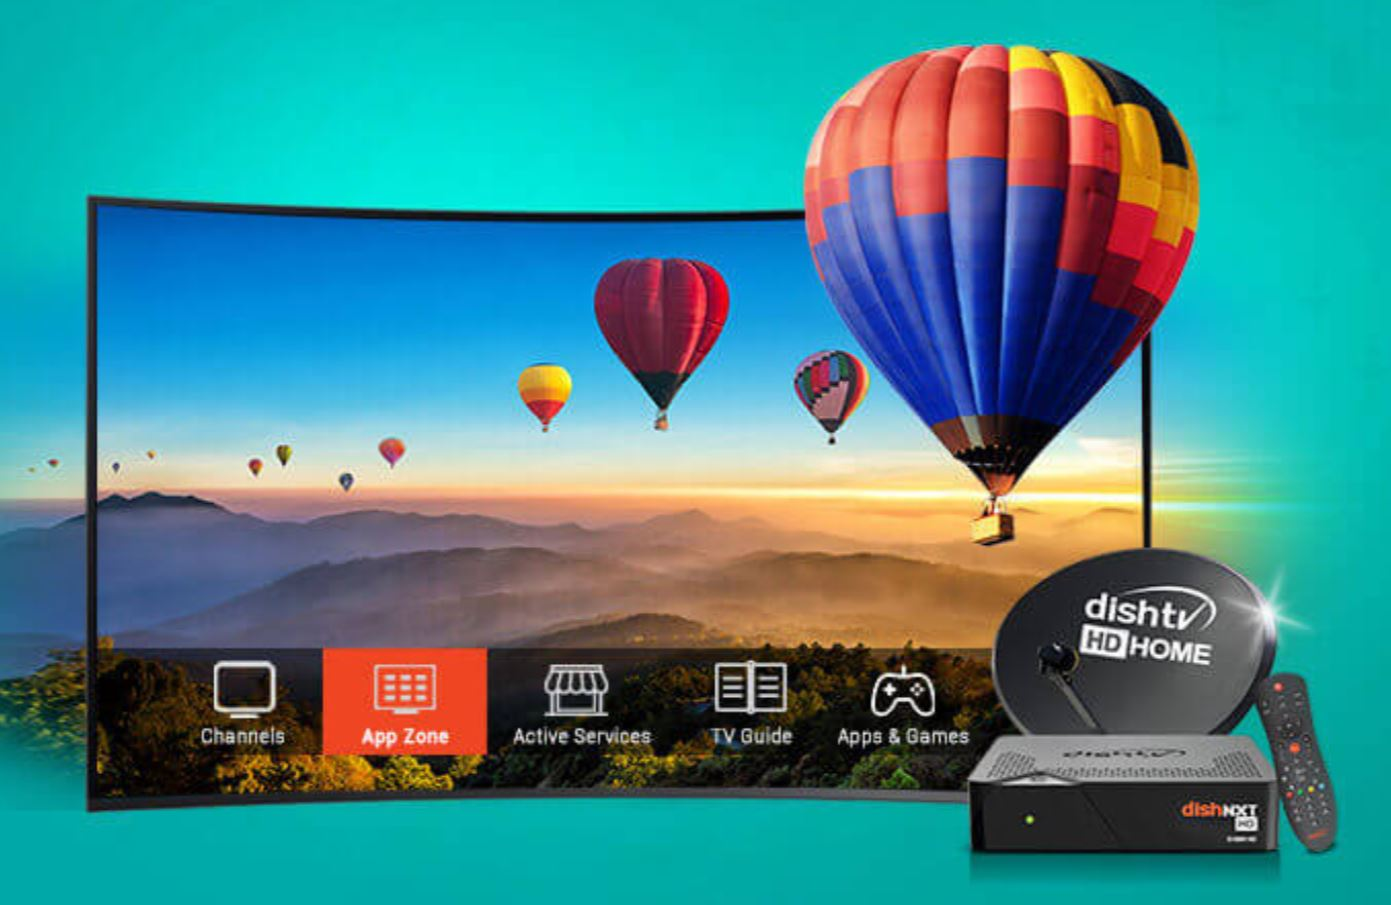 Dish TV to add more HD channels soon